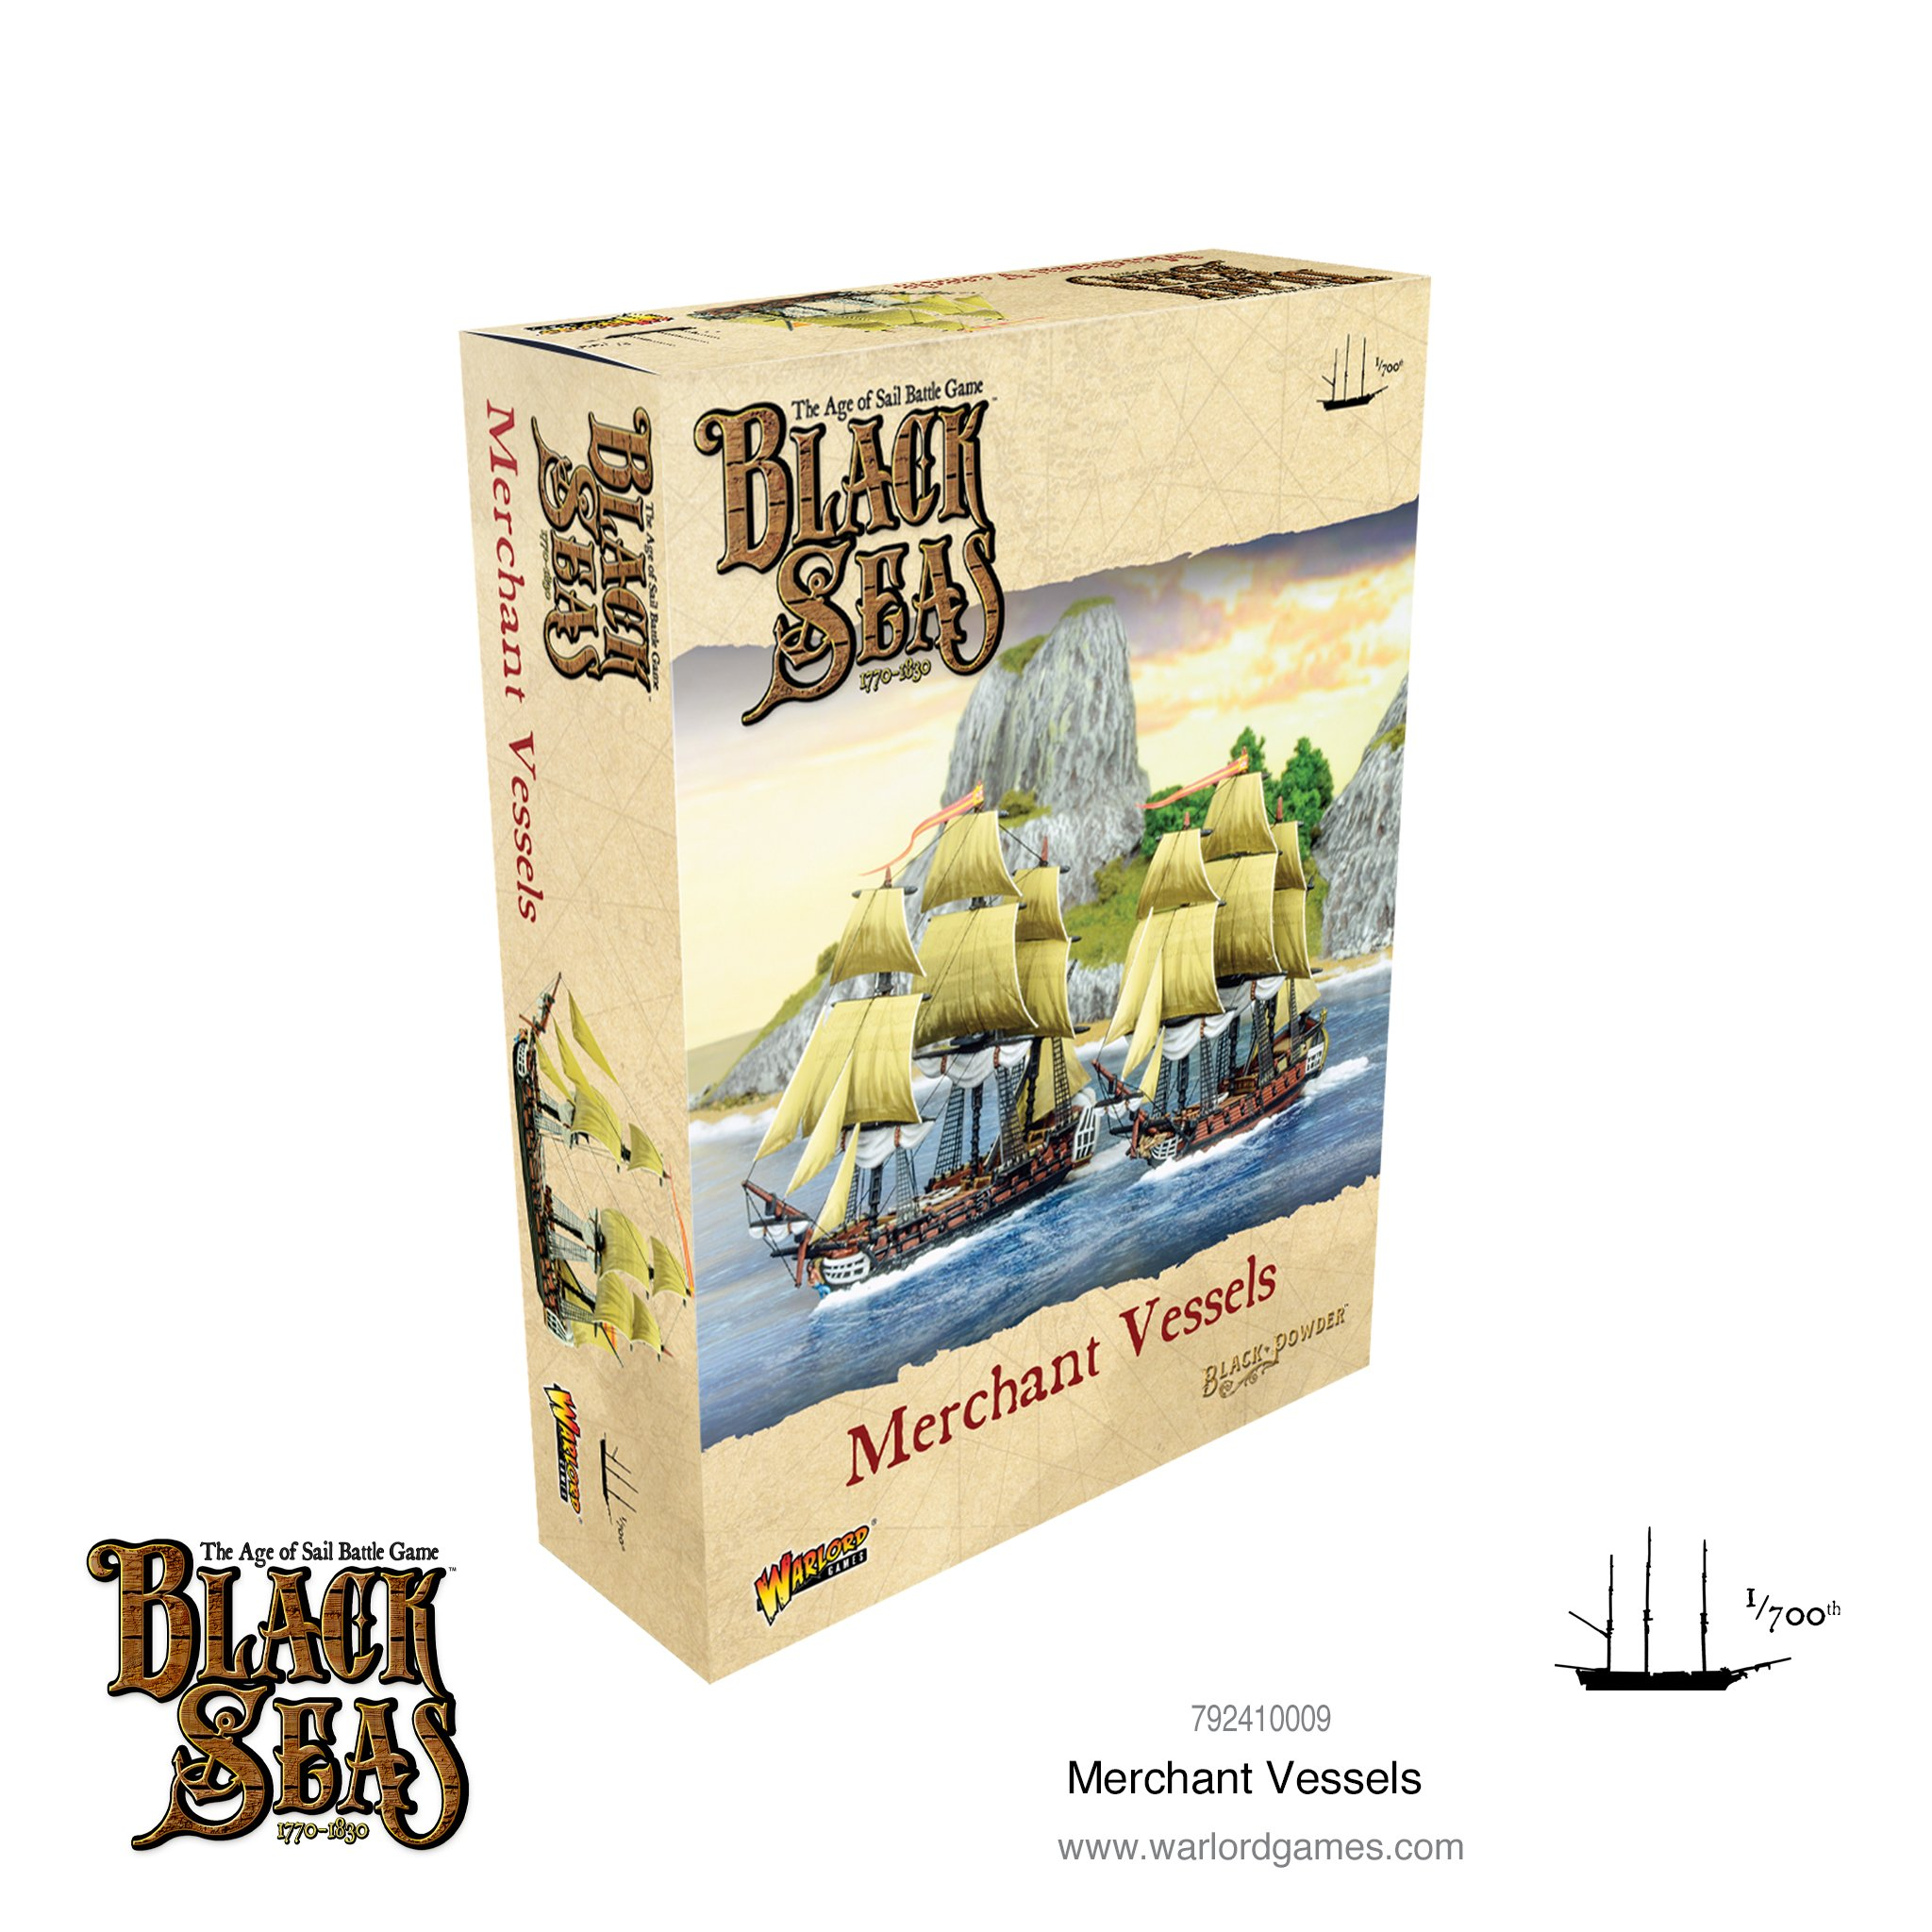 Black Powder Merchant Vessels